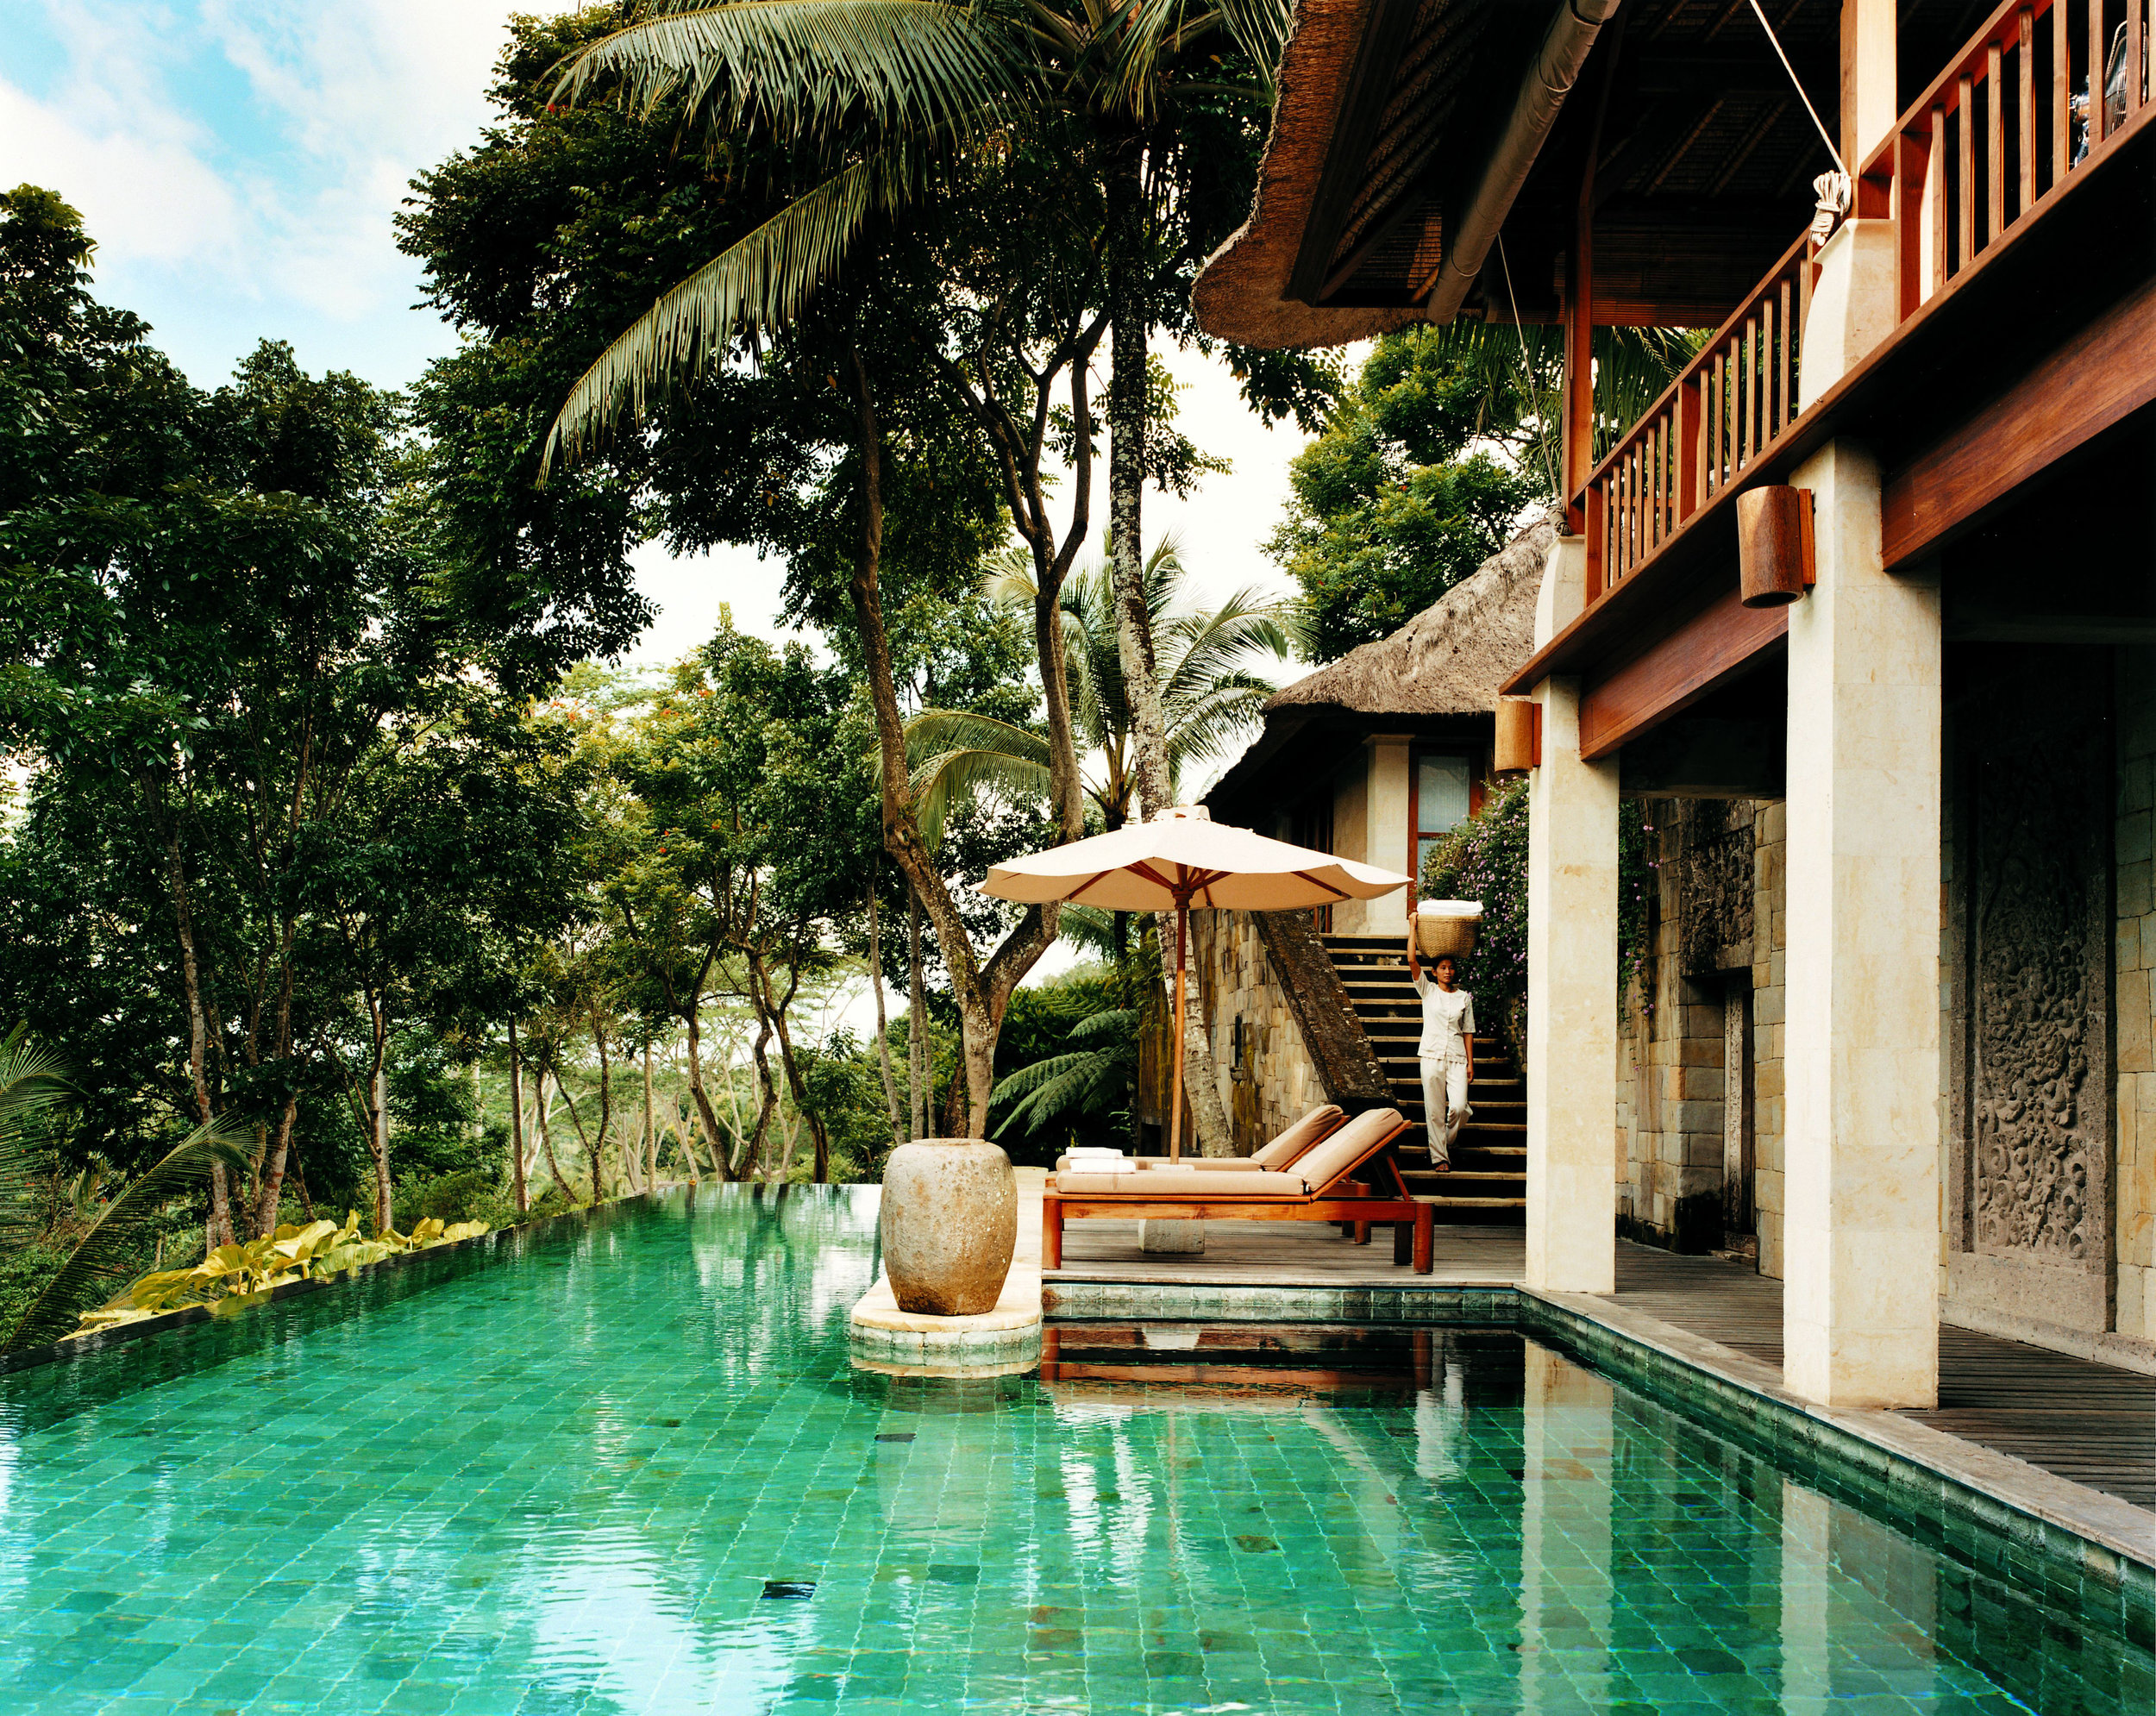 Be inspired by Bali, as Sharleen Singh discovers an Indonesian wellness oasis